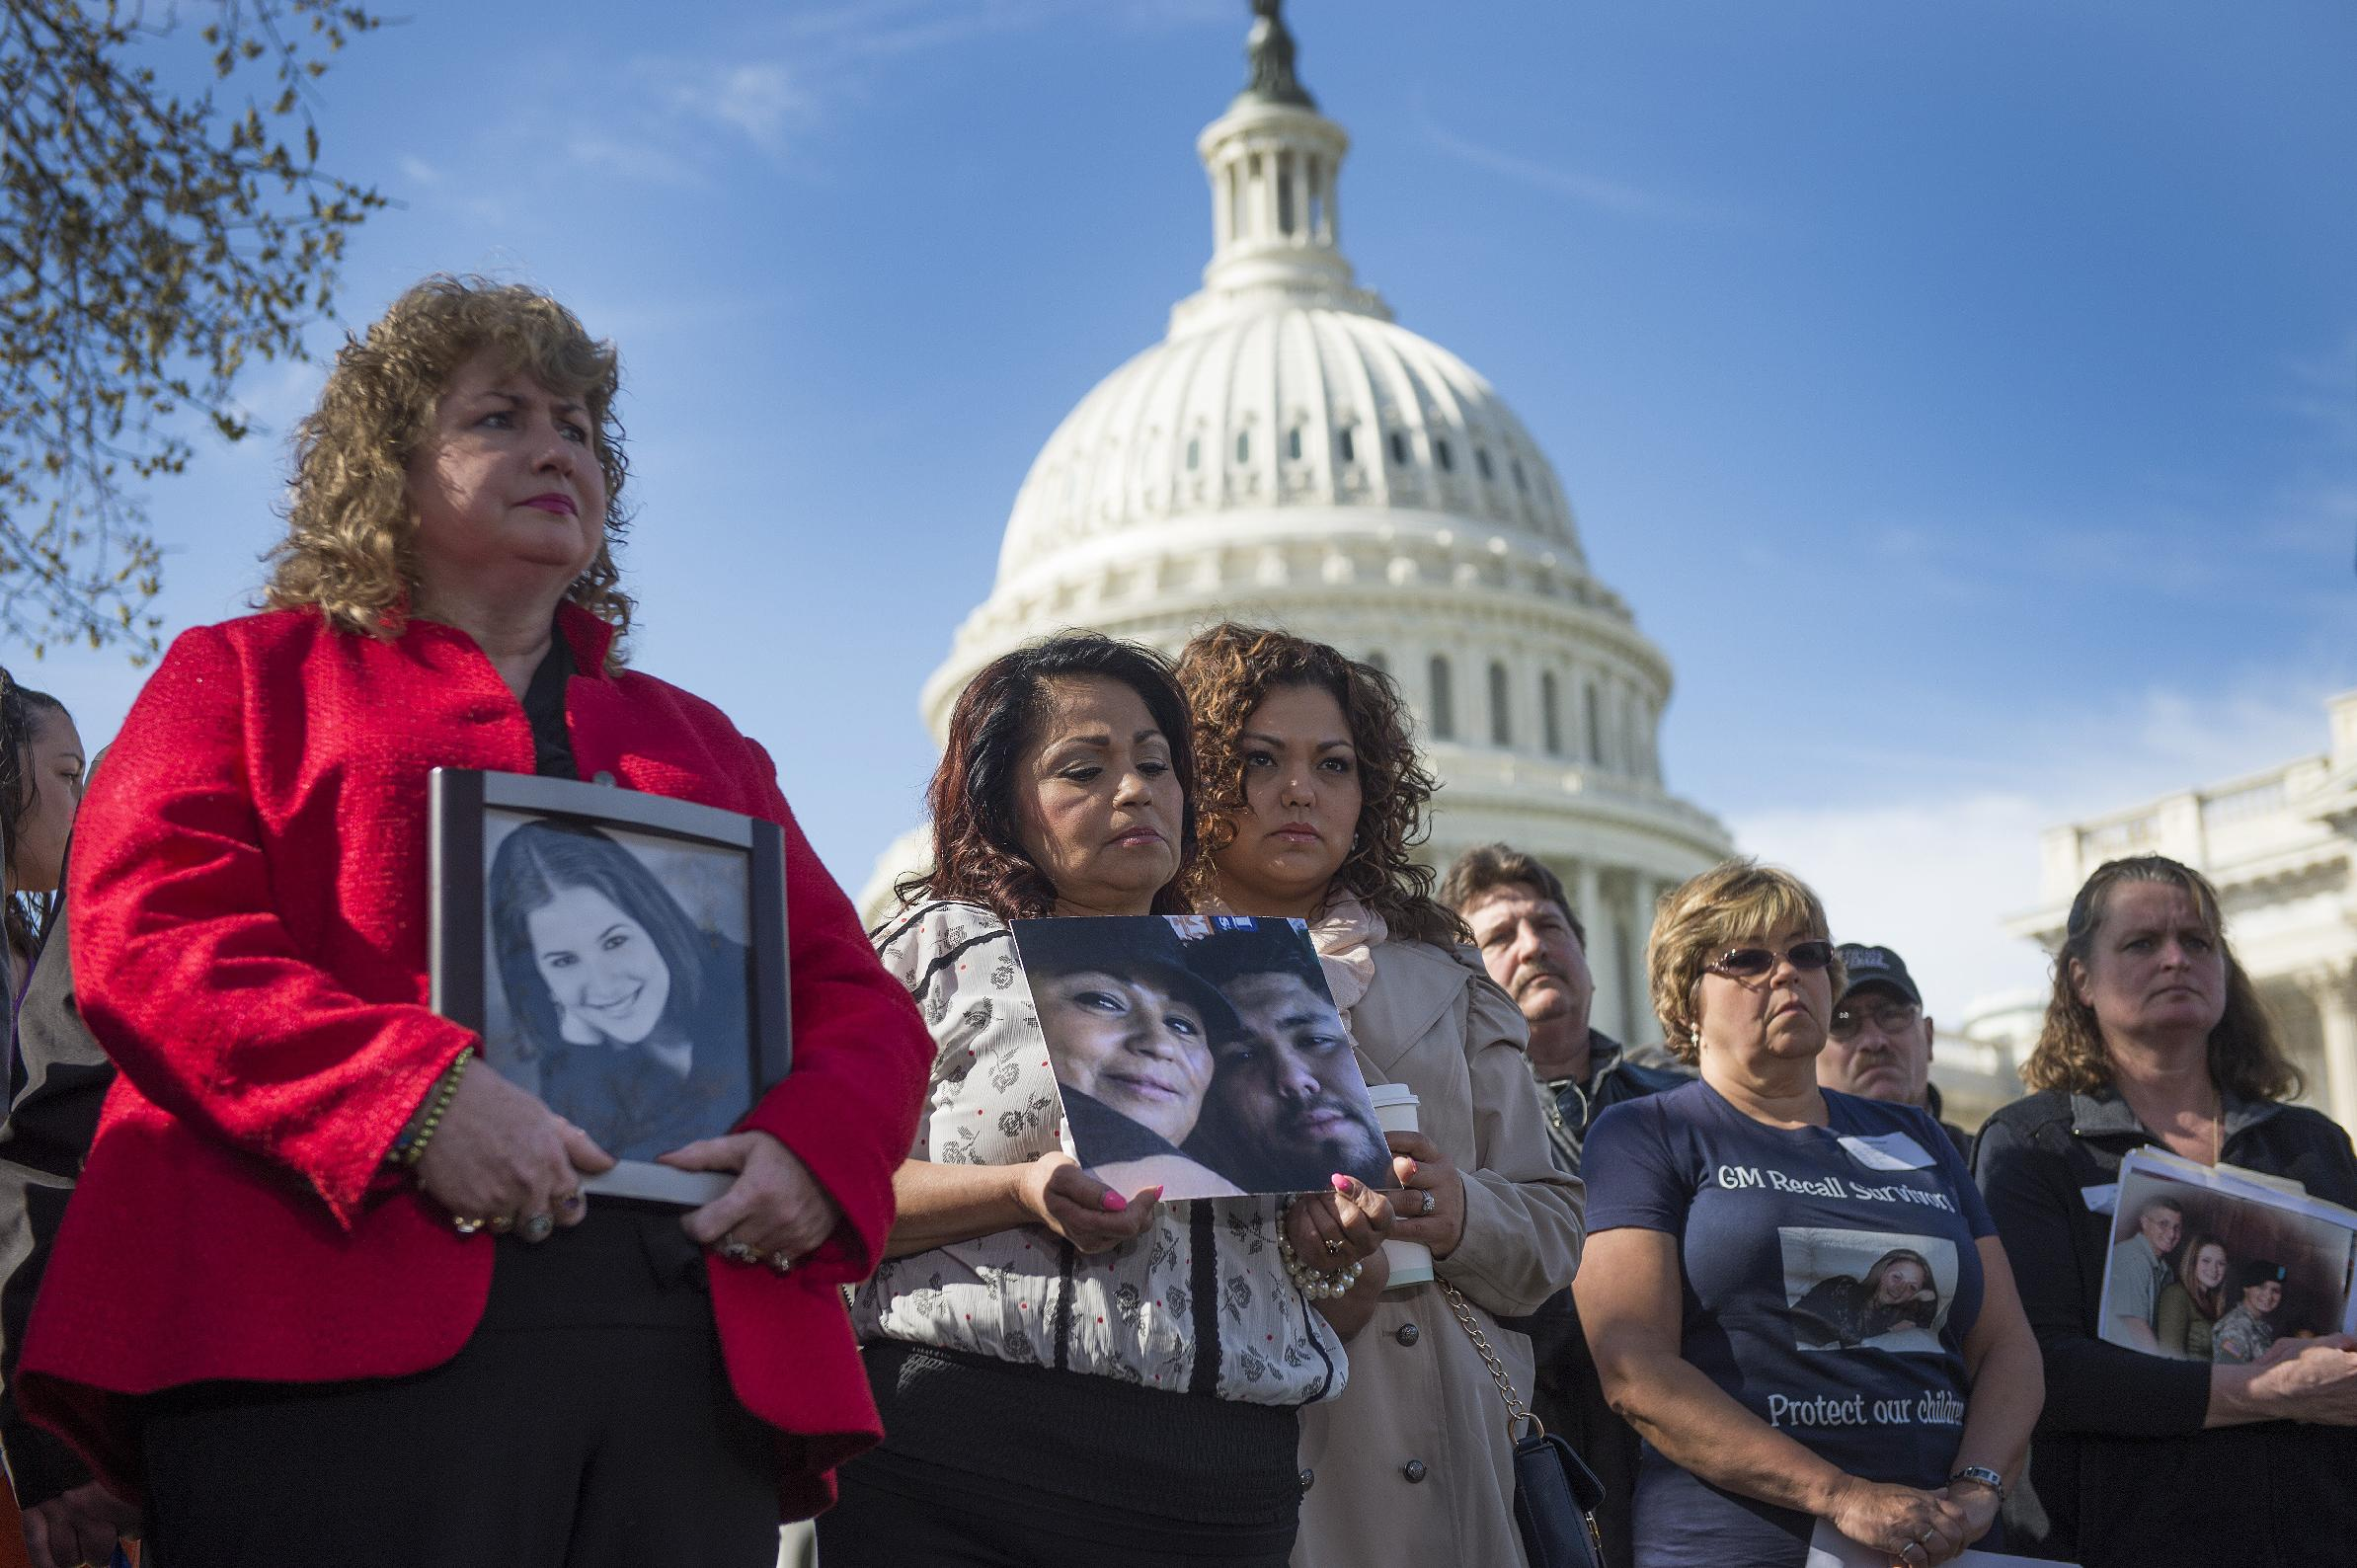 Mary Ruddy (L), whose daughter Kelly died in the crash of a 2005 Chevy Cobalt, attends a press conference with family members of deceased drivers on Capitol Hill in Washington, DC on April 1, 2014